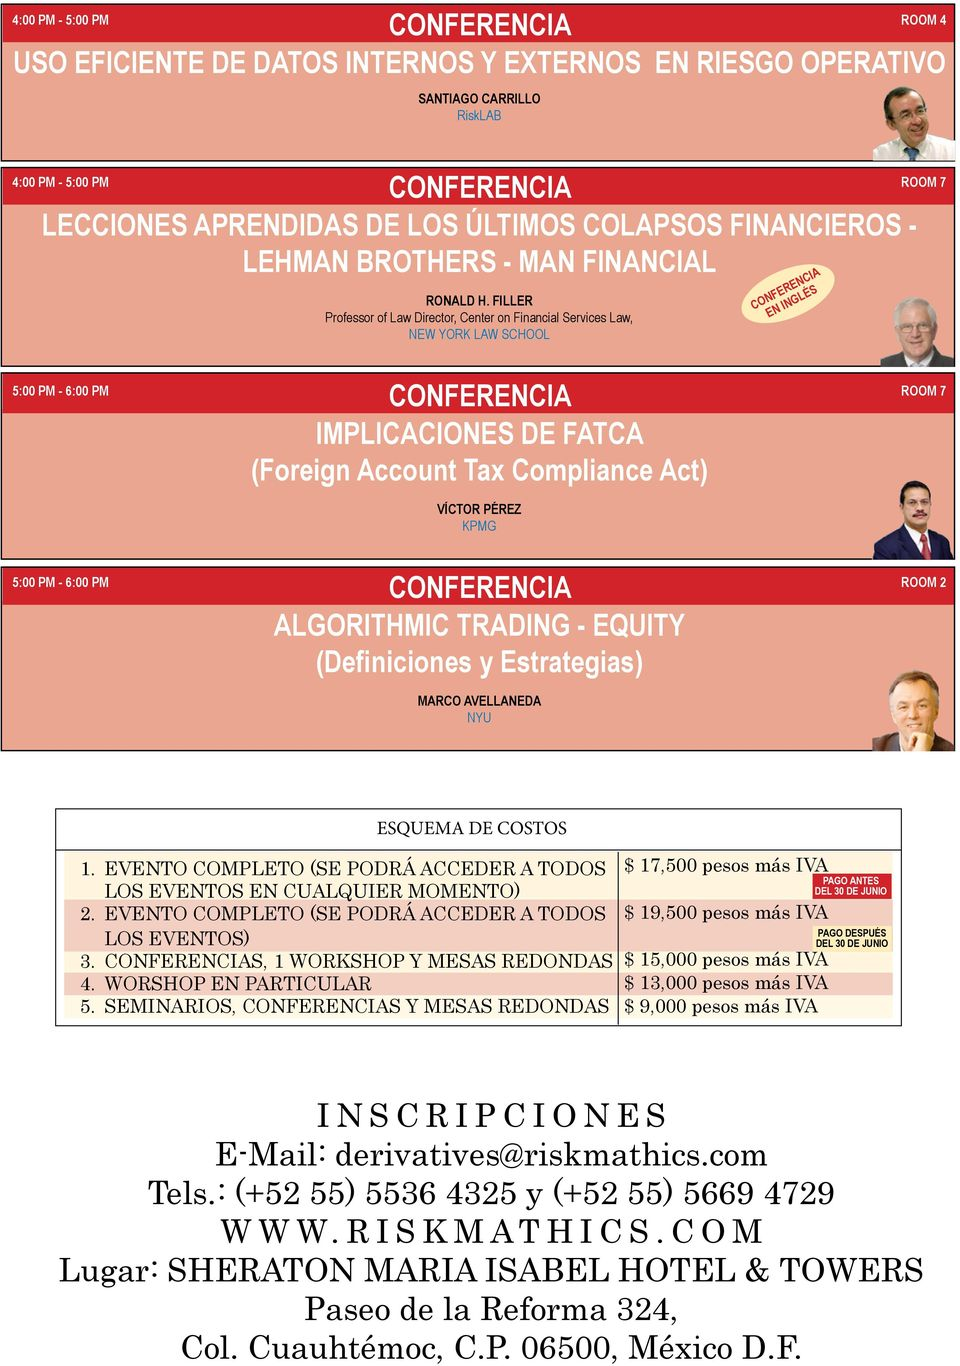 FILLER Professor of Law Director, Center on Financial Services Law, NEW YORK LAW SCHOOL CONFERENCIA EN INGLÉS 5:00 PM - 6:00 PM ROOM 7 CONFERENCIA IMPLICACIONES DE FATCA (Foreign Account Tax